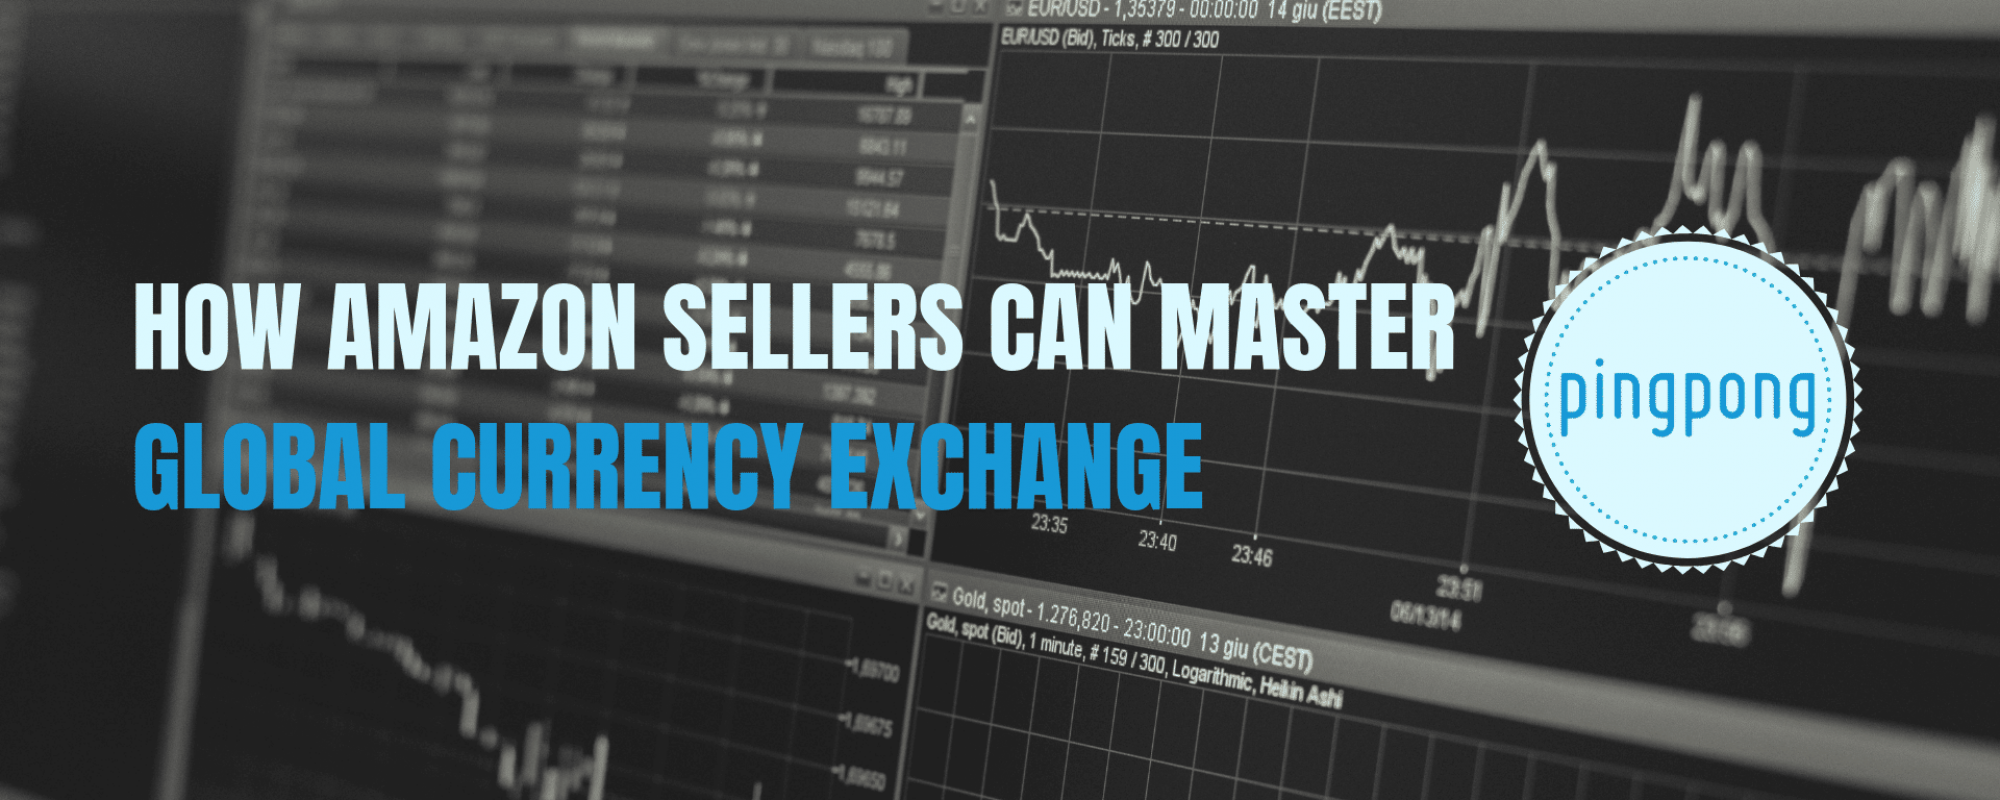 How Amazon Sellers Can Master Global Currency Exchange (6)